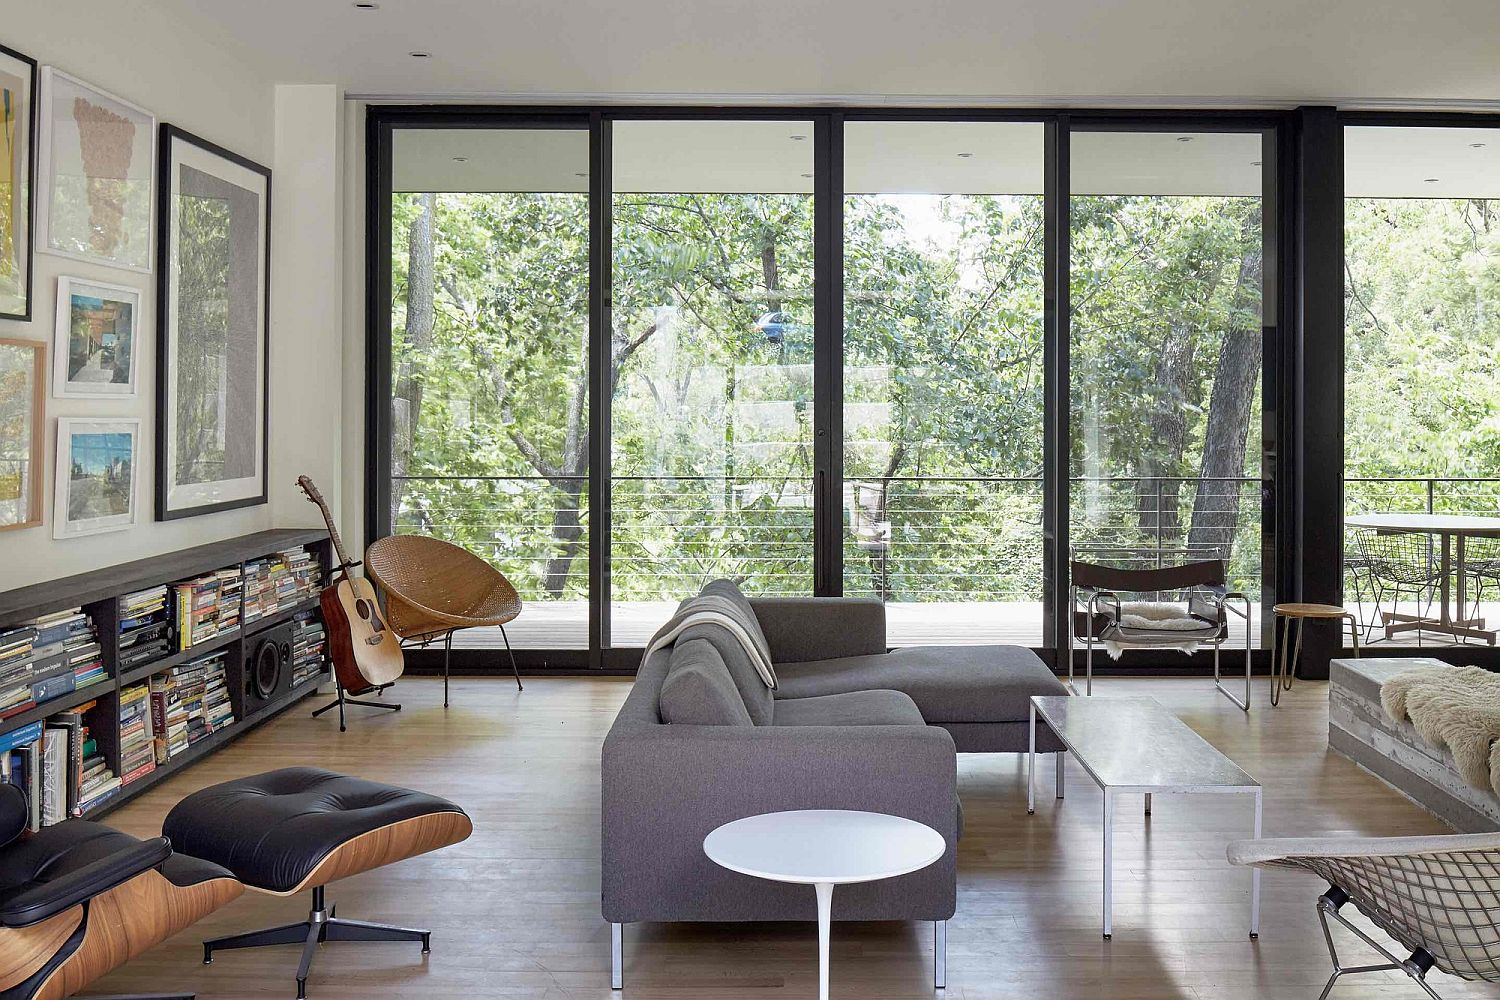 Contemporary-living-room-with-Eames-Lounger-and-a-stylish-bookshelf